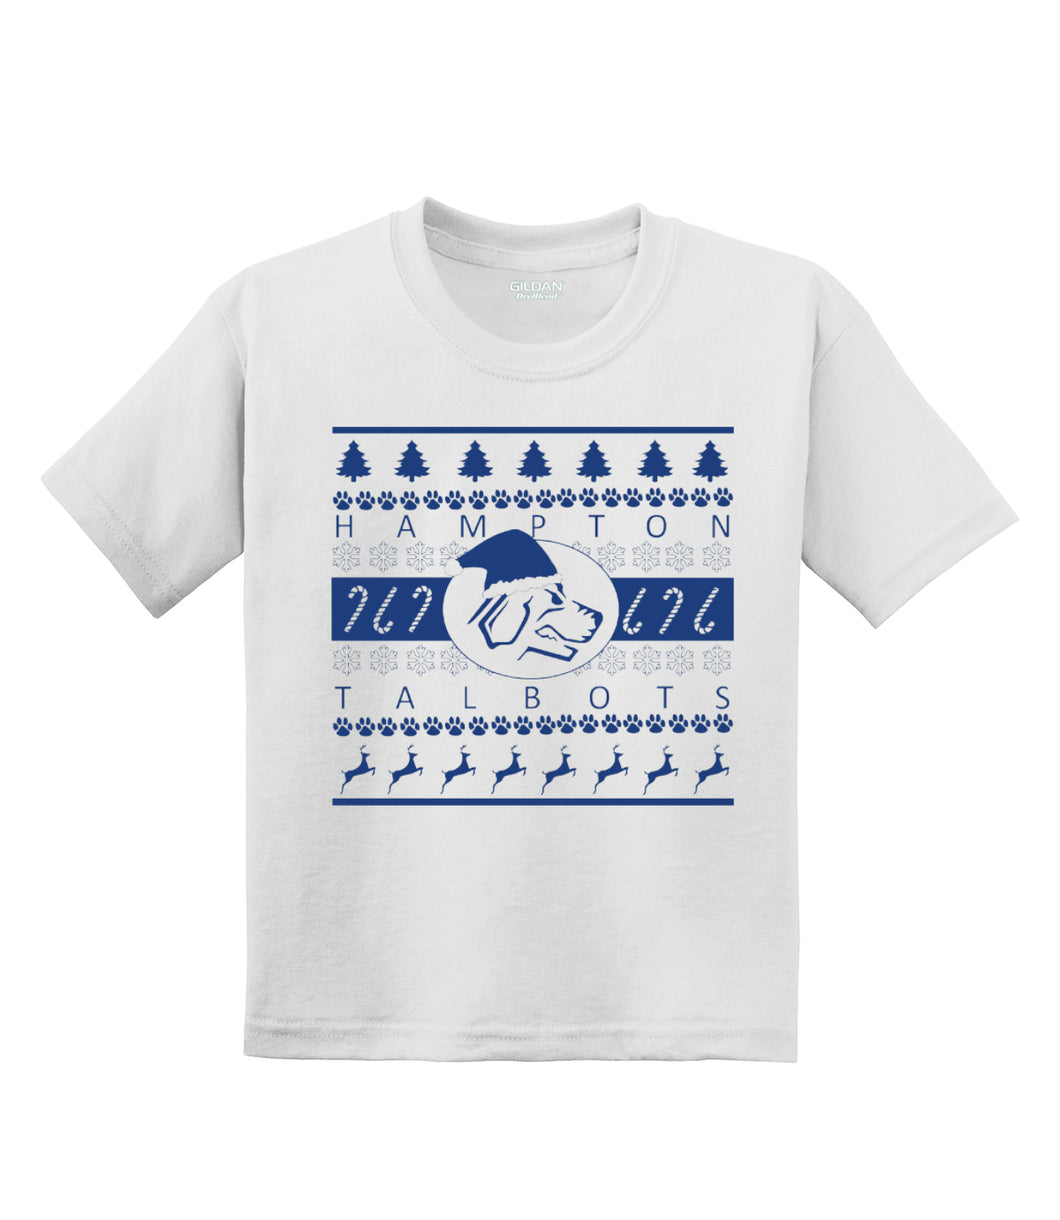 Hampton Band Holiday - 8000B Youth White Short Sleeve Tee